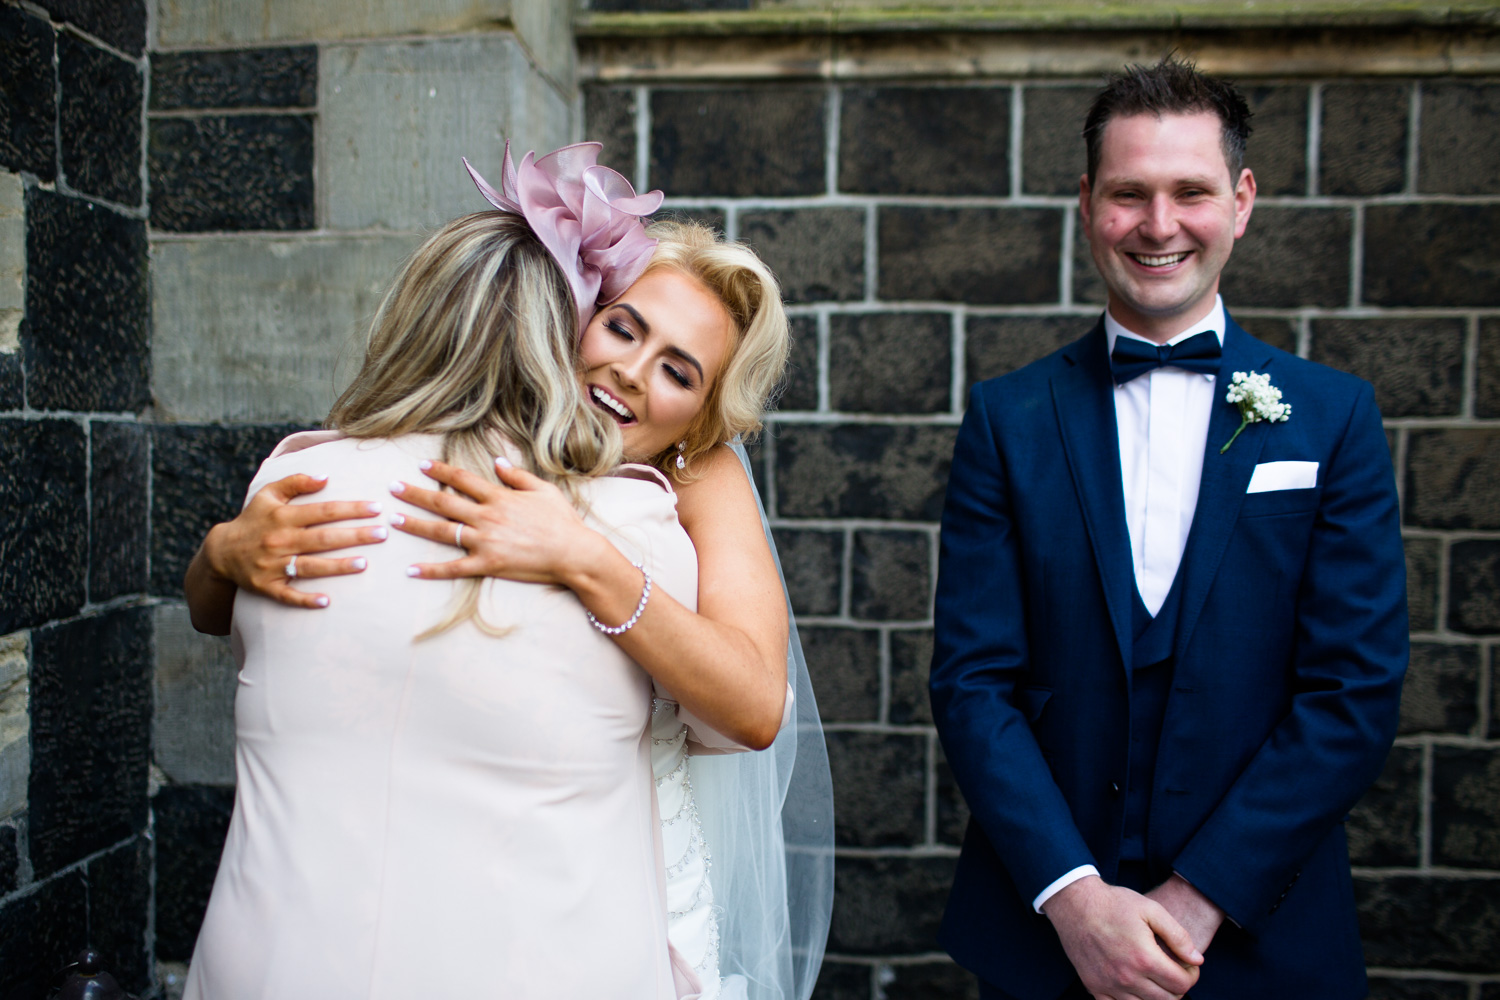 Mark_Barnes_wedding_photographer_Northern_Ireland_Wedding_photography_Carlingford_Four_Seasons_Wedding-29.jpg